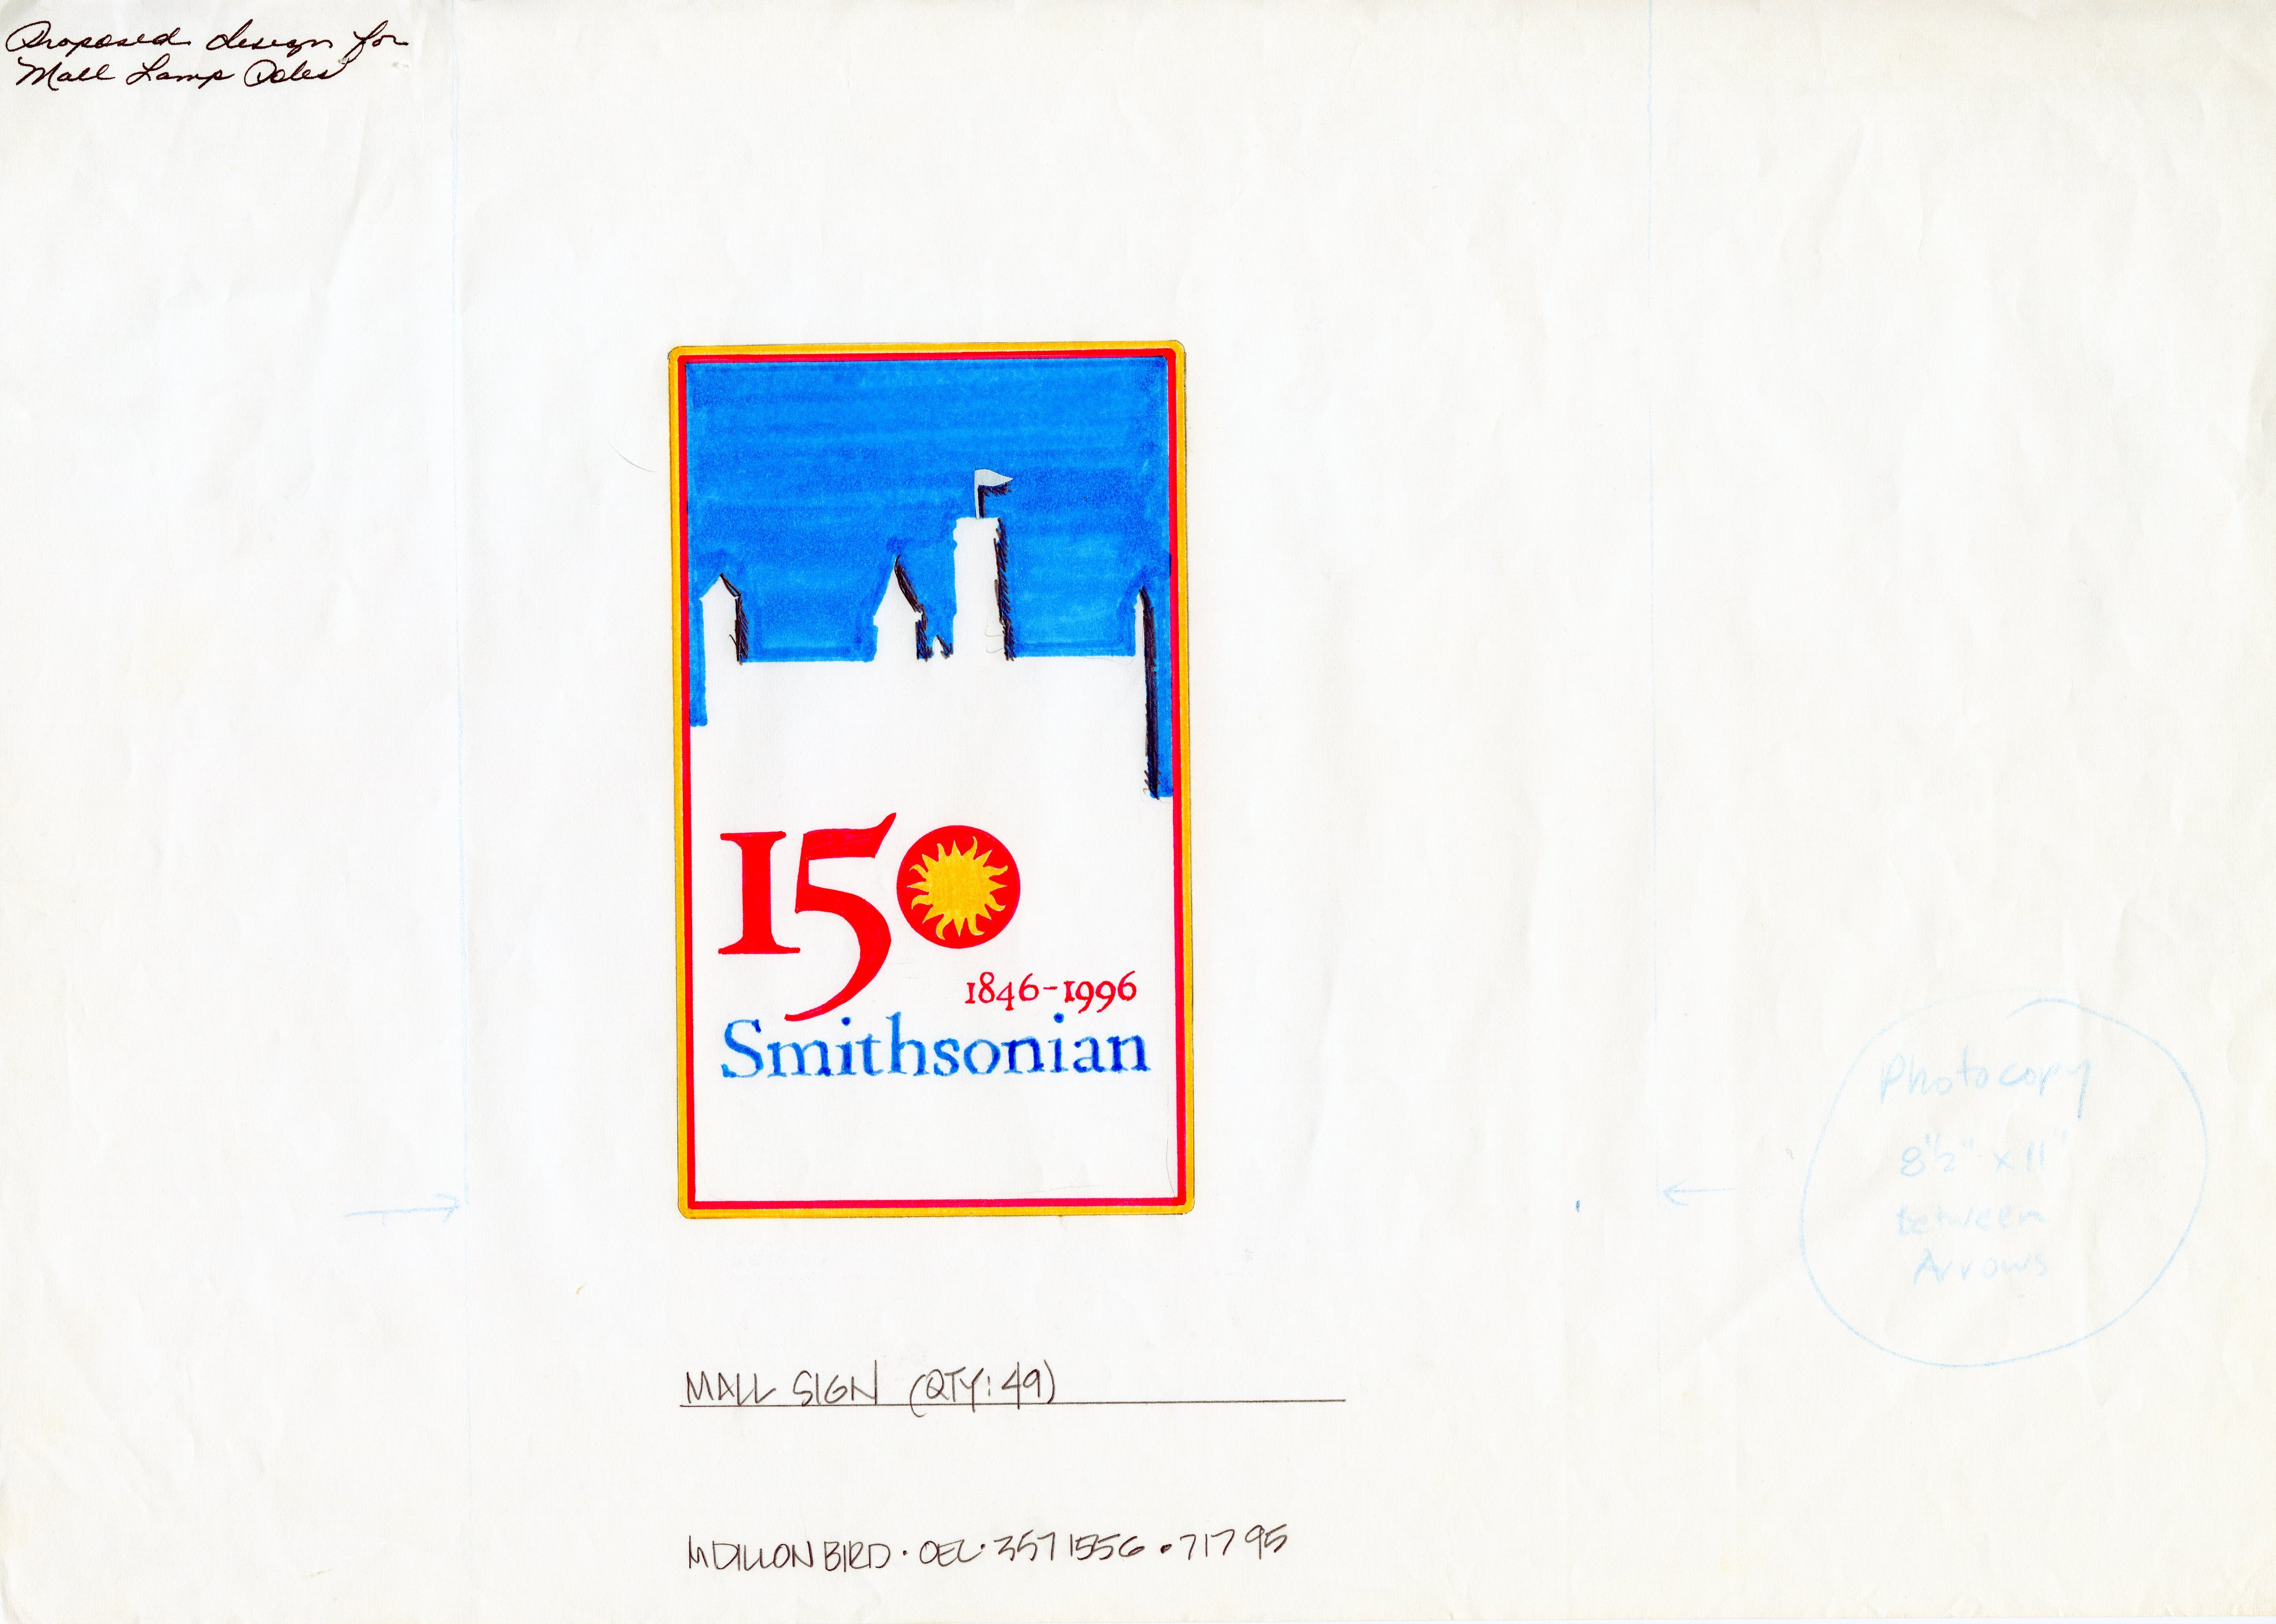 Proposed design for National Mall lamppost flags by Mary Dillon Bird, Office of Exhibits Central, 19